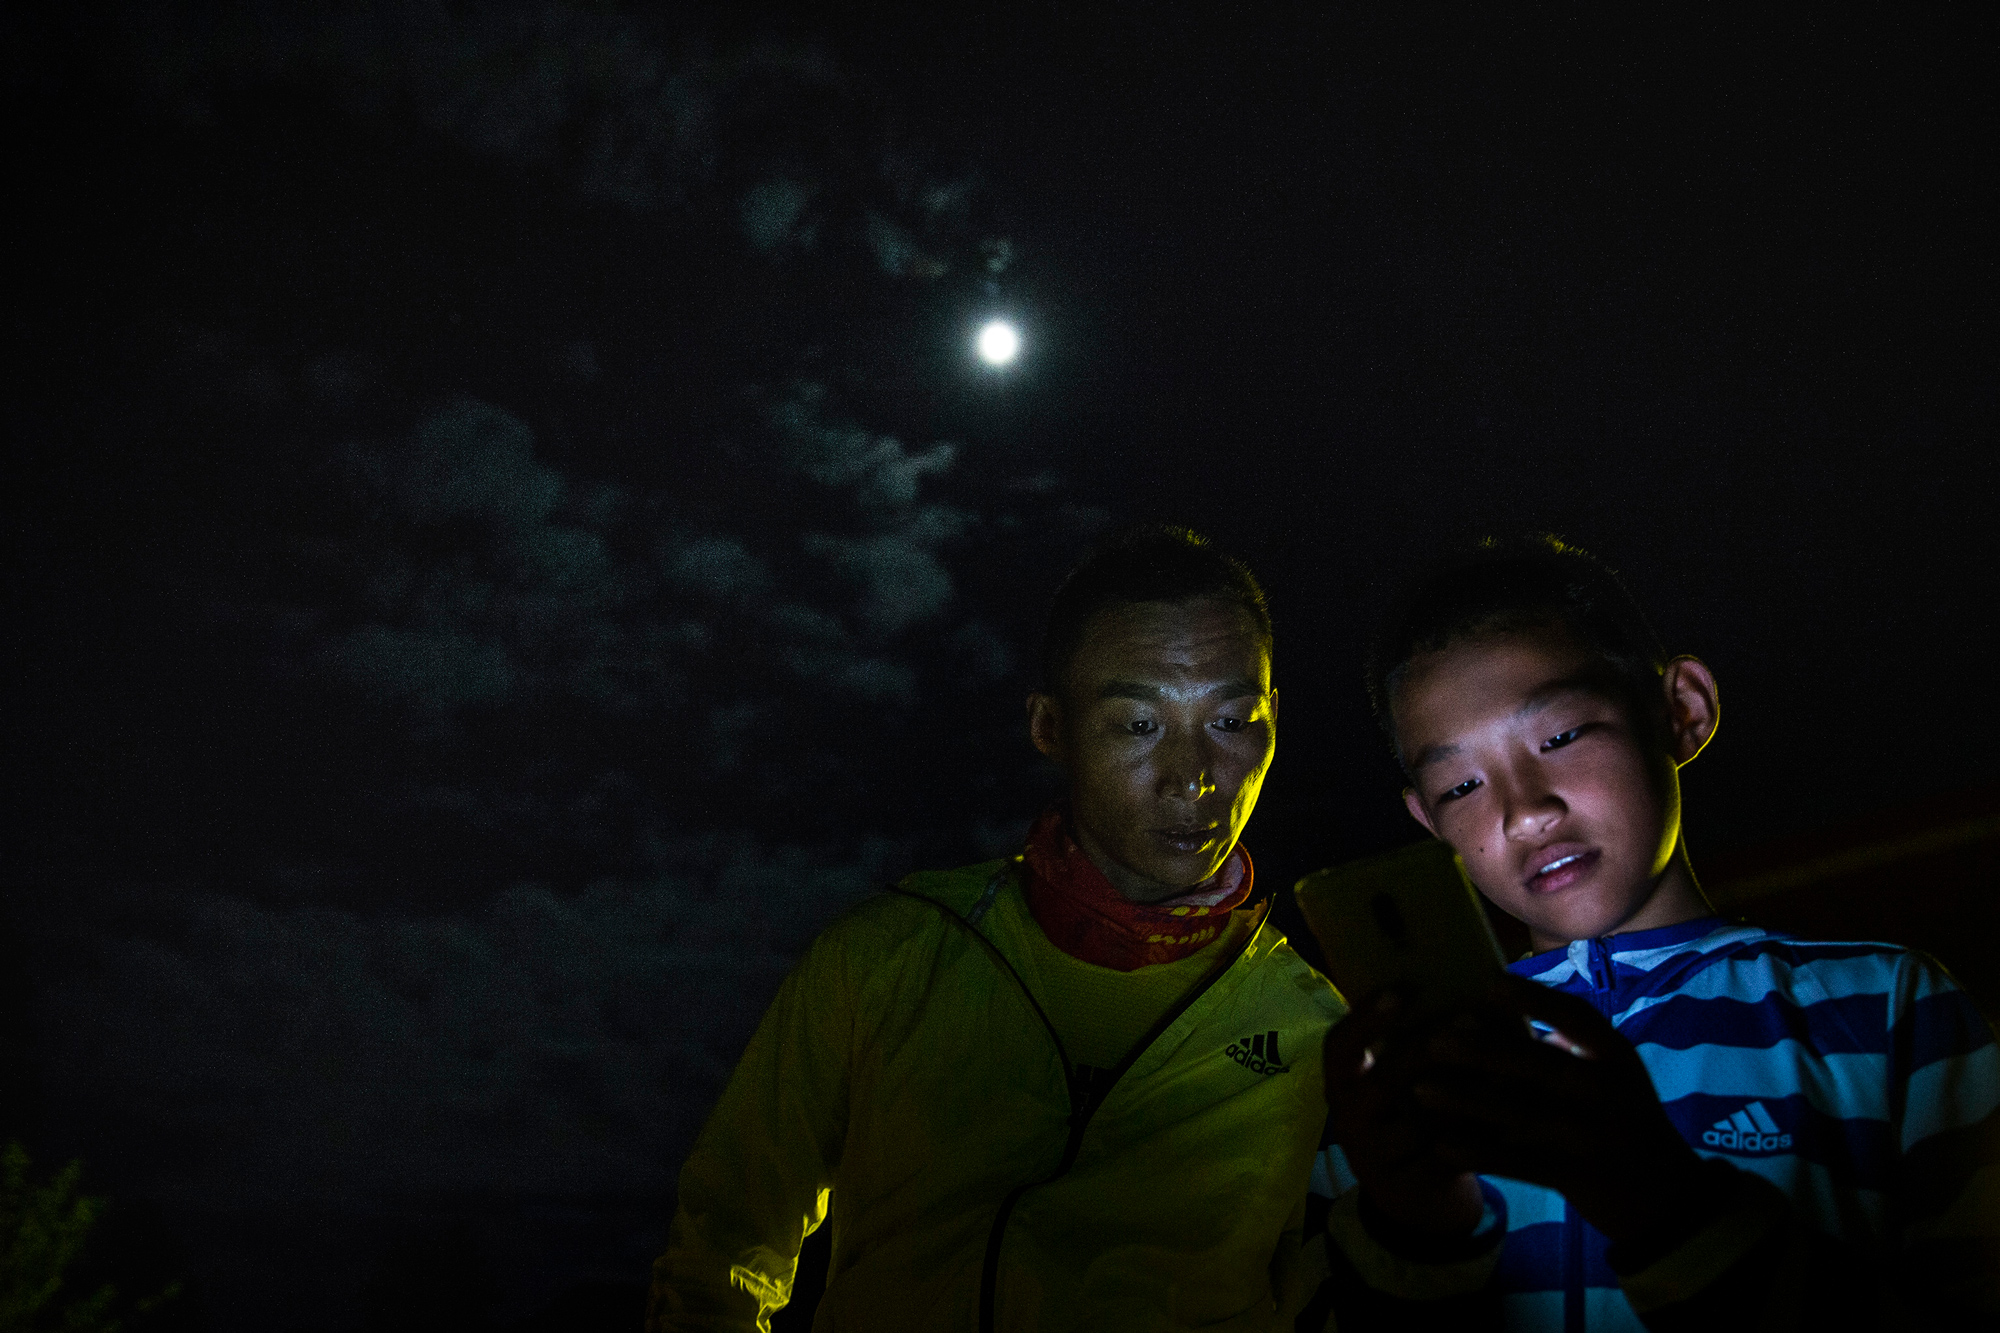 Runxi uses his dad's phone to try to find a hotel for the night, in Guxiang Village of Nyingchi city, Tibet, August 1.